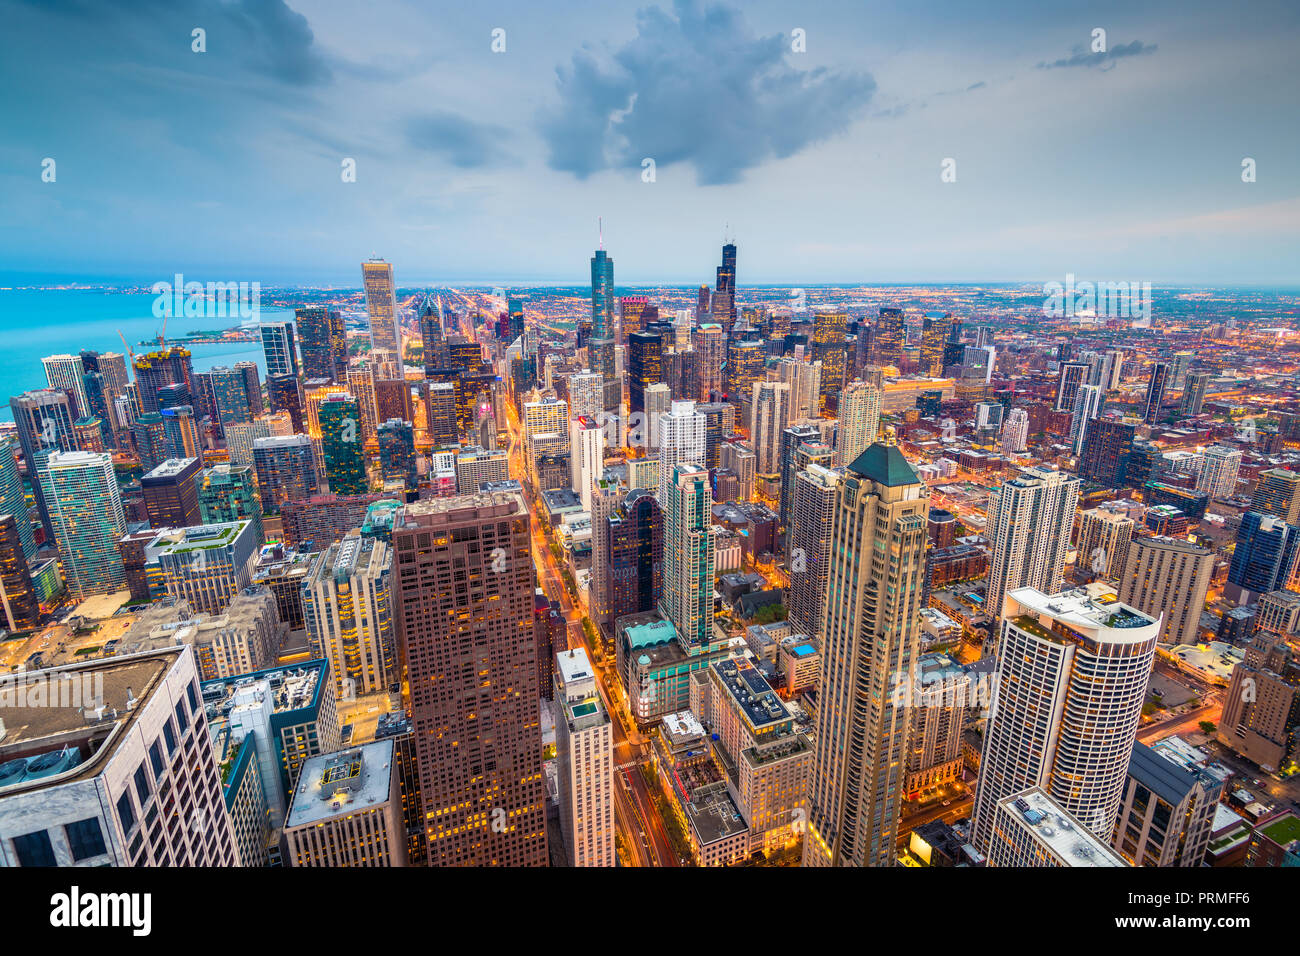 Chicago, Illinois USA aerial skyline after sunset. - Stock Image